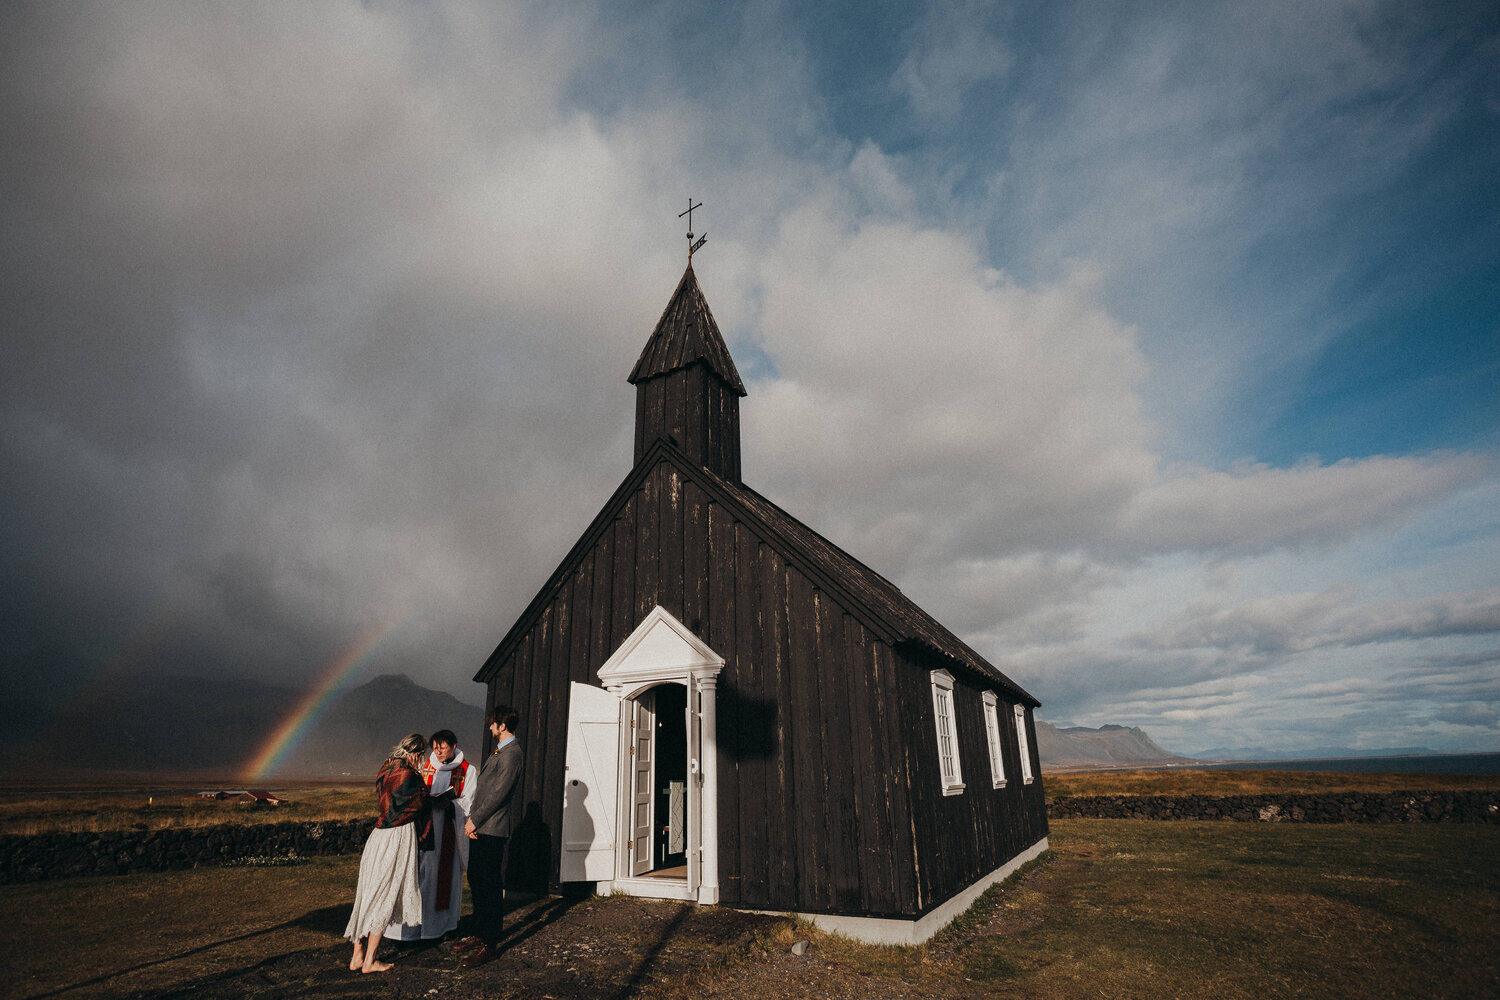 A wedding couple is getting married next to a church in Iceland.